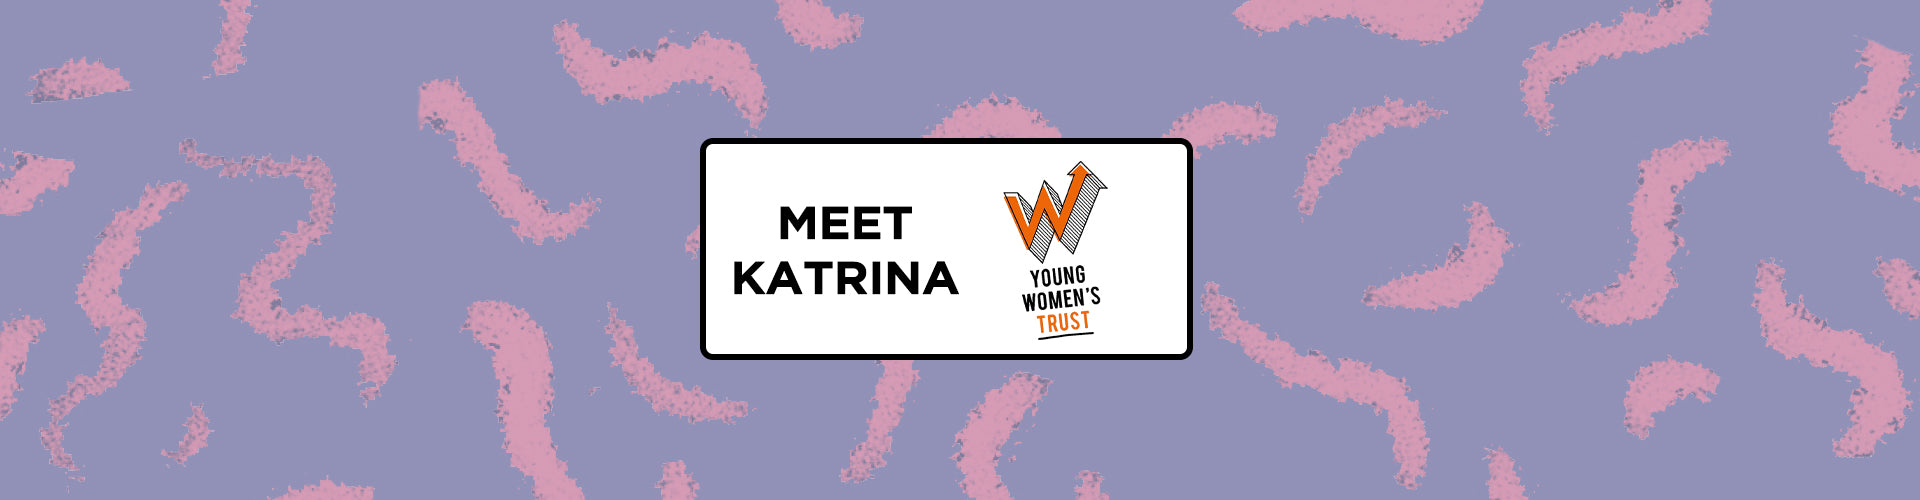 Meet Katrina - Advisory Panel member for Young Women's Trust